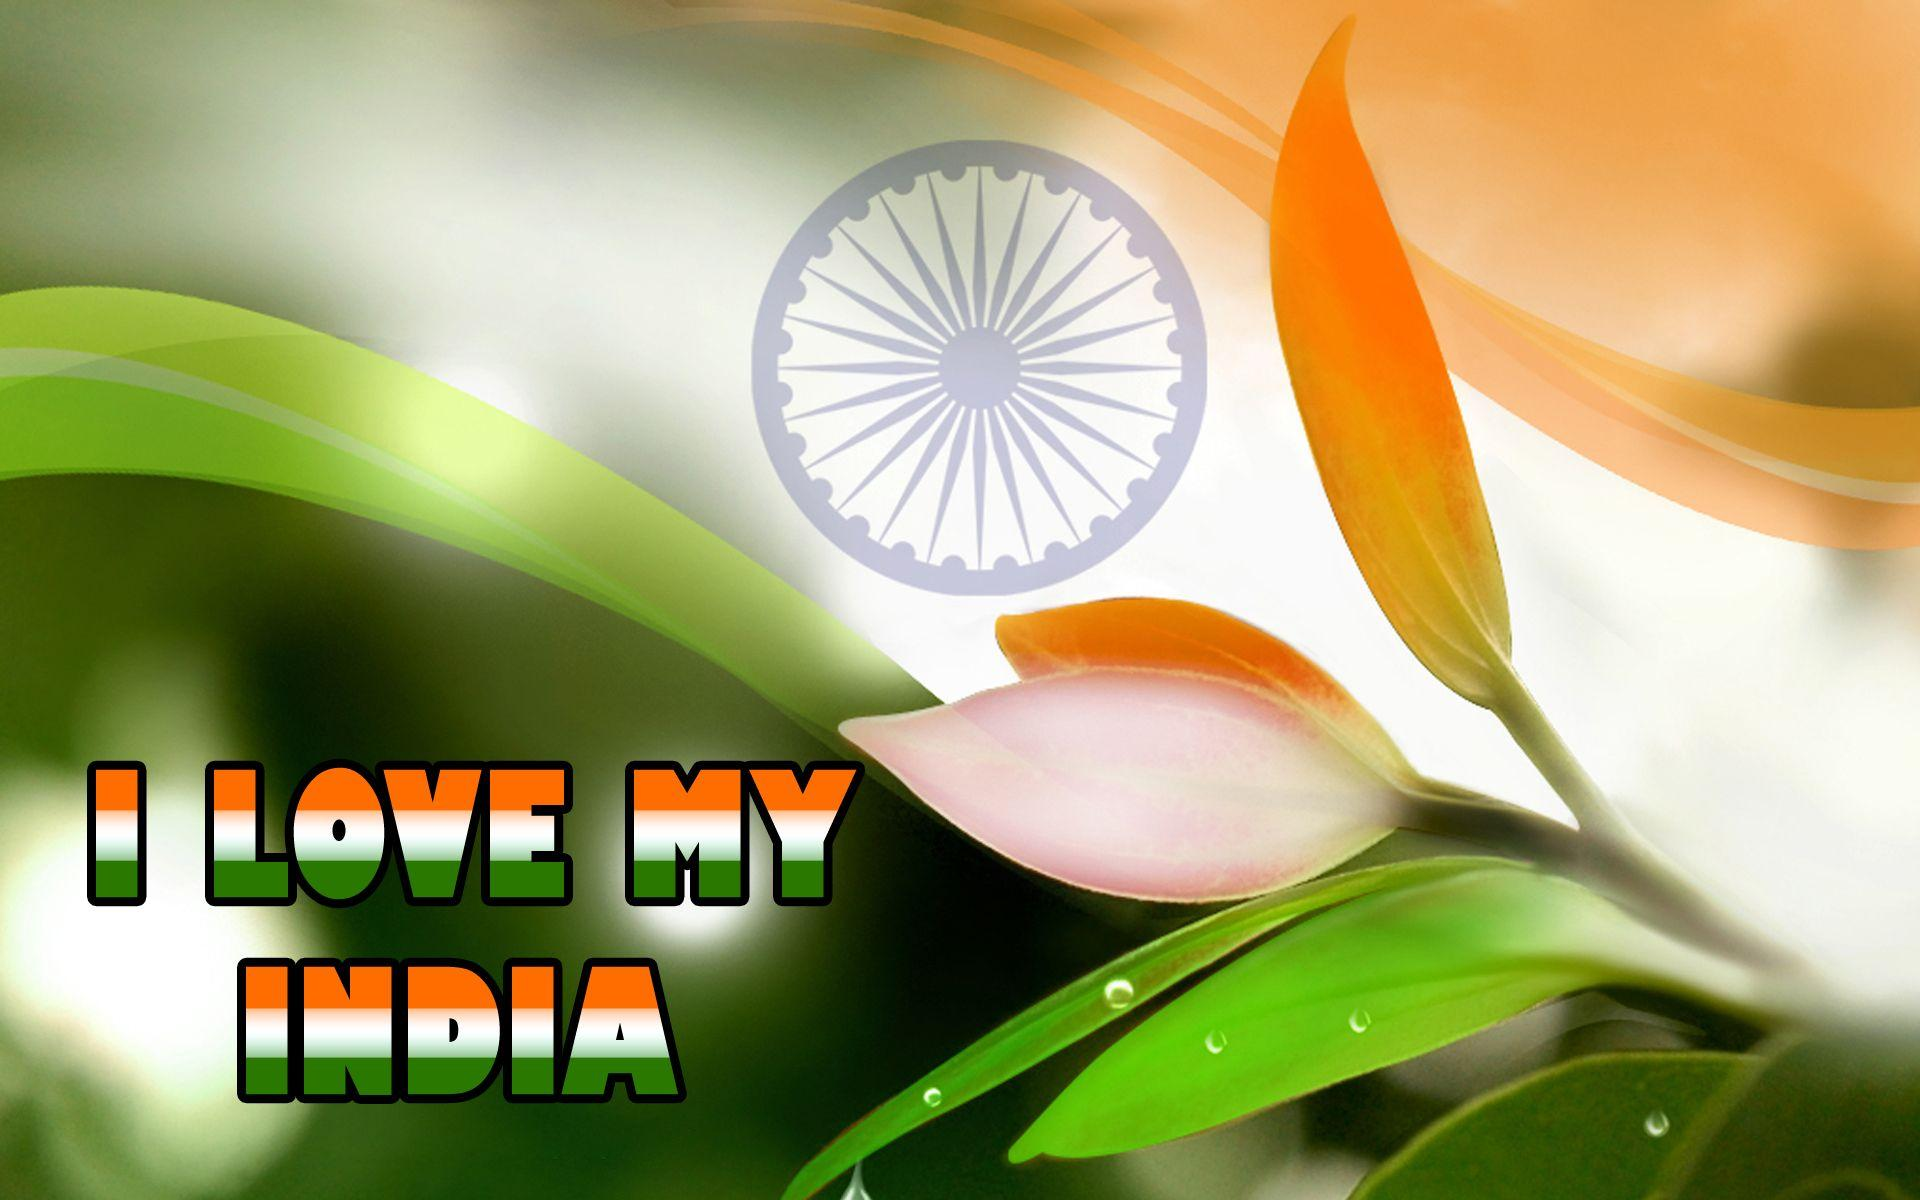 I Love My India Image And Wallpaper